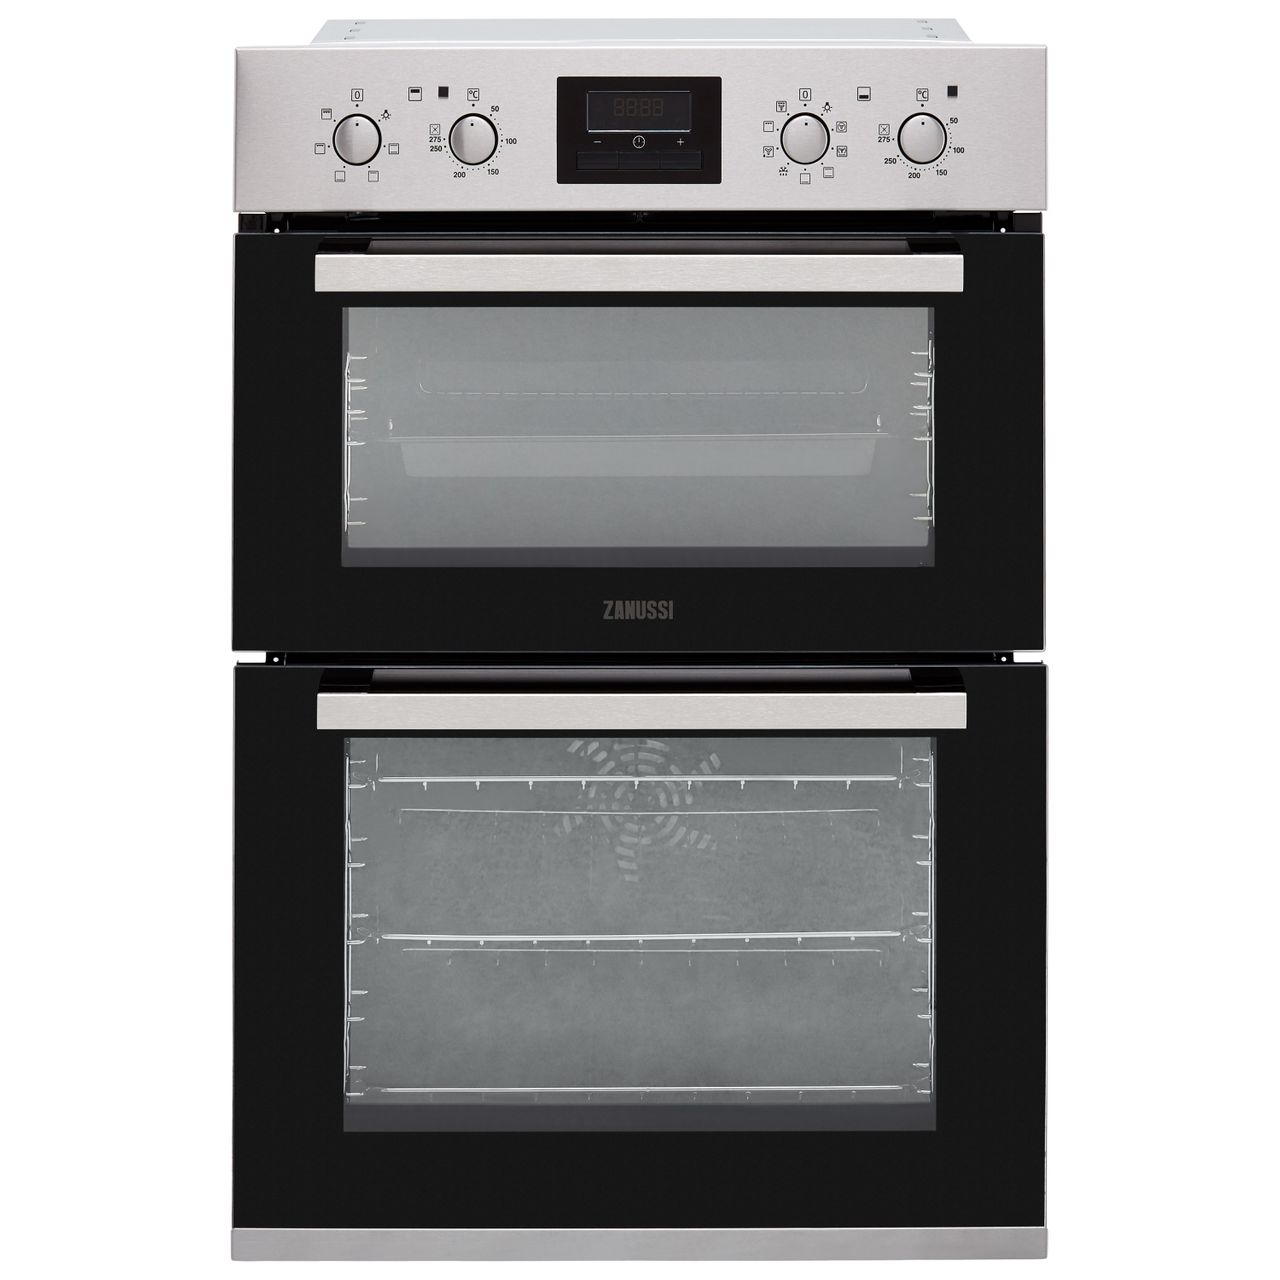 Zanussi Built In Electric Double Oven - Stainless Steel - A/A Rated